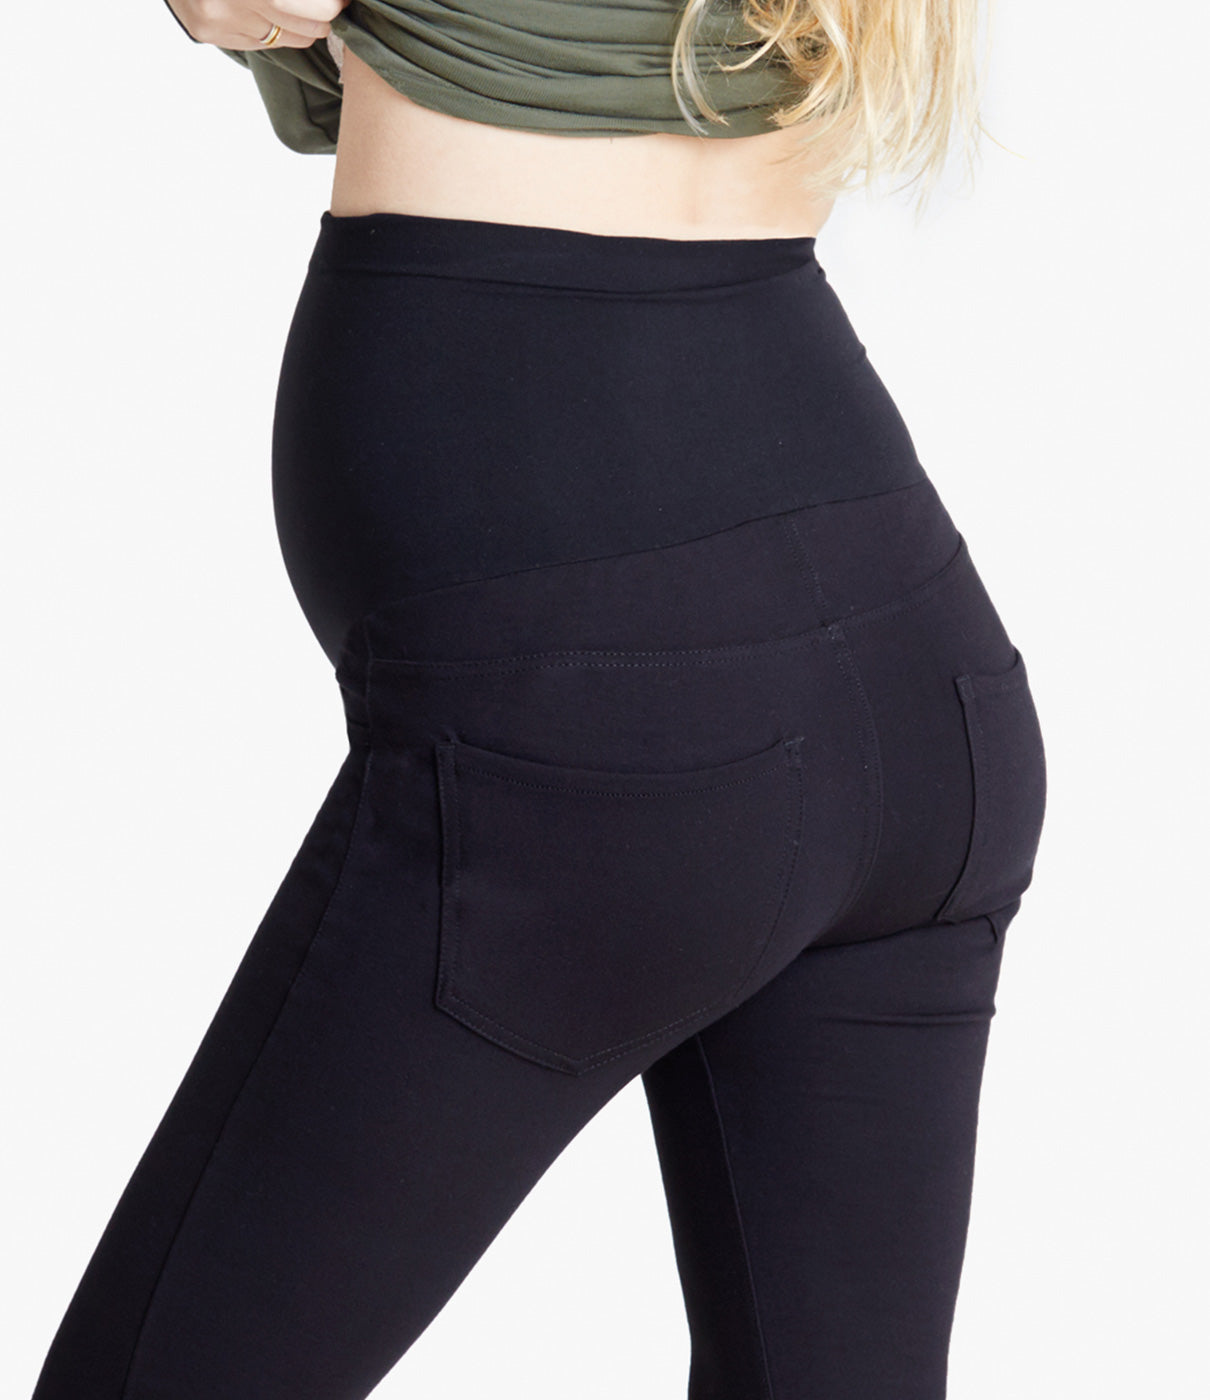 FIT FACTSVersatile, seamless Bellaband® panel can be worn up or folded down.